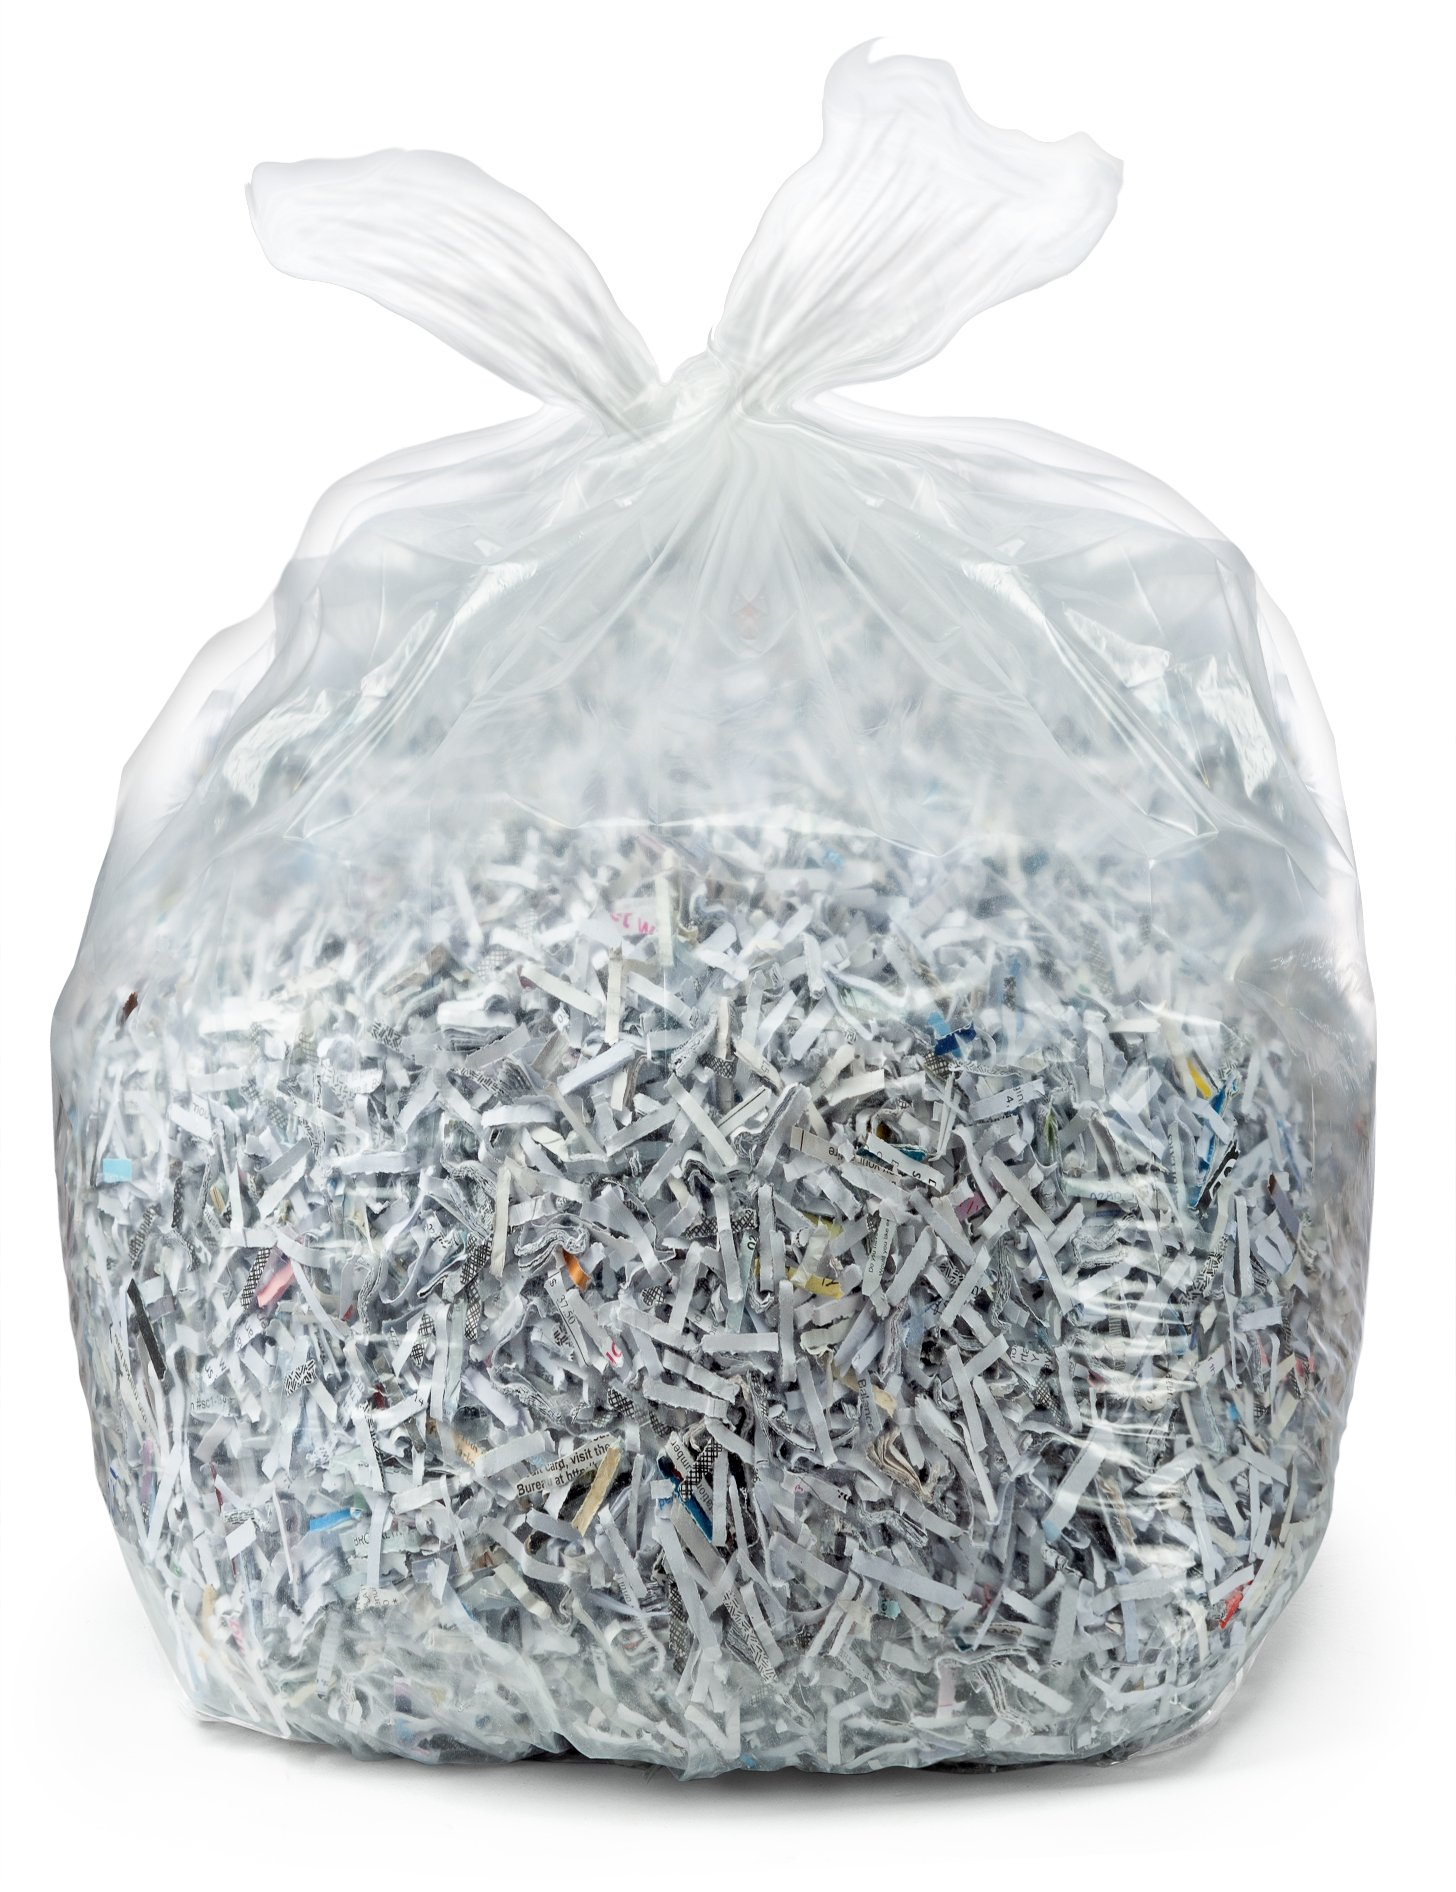 case of 100 bags Silver Plasticplace 33 Gallon Low Density Trash Bags